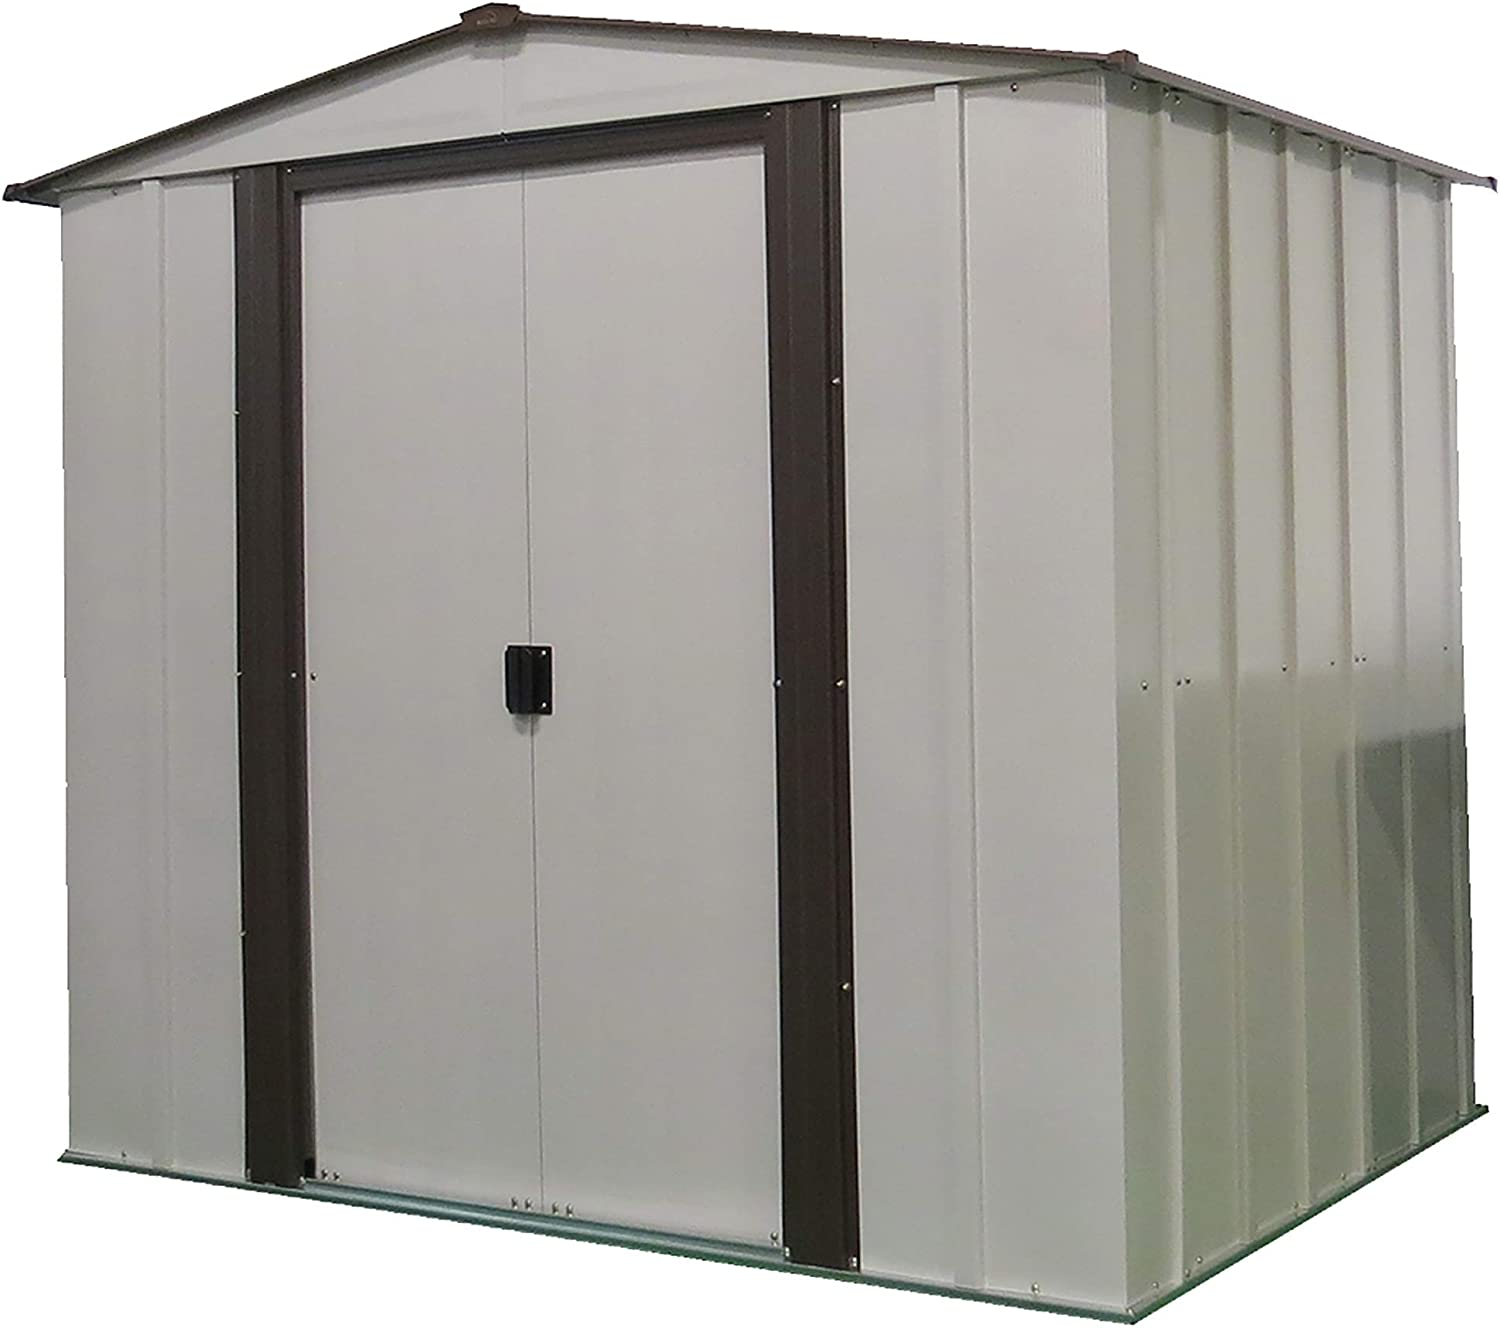 B016VZEBBG Arrow 6' x 5' Newburgh Eggshell with Coffee Trim Low Gable Electro-Galvanized Steel Storage Shed 71FMuHE9HGL